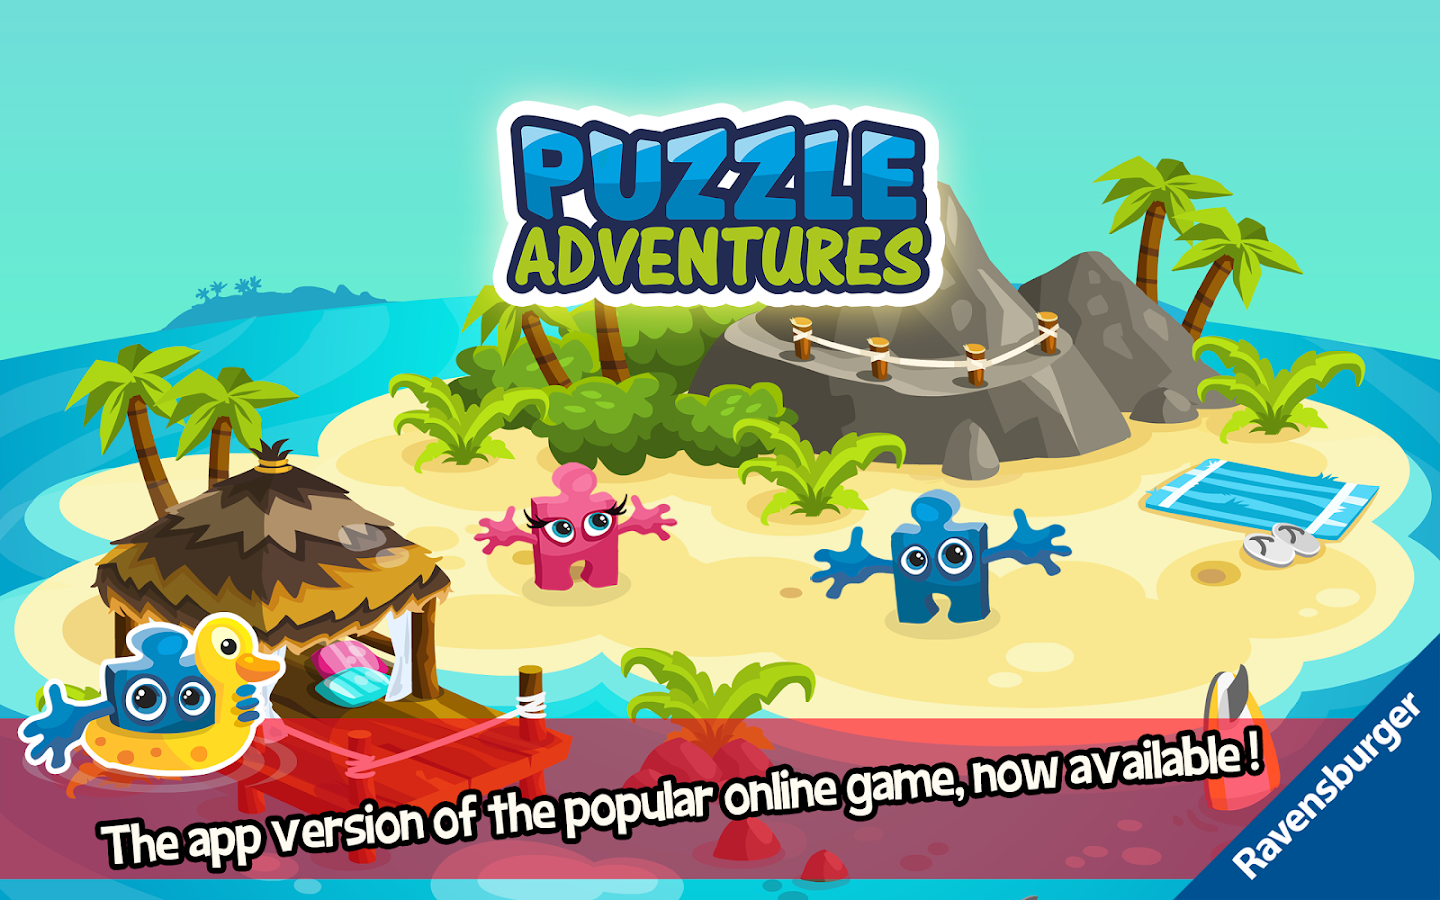 Puzzle Adventures Screenshot 5